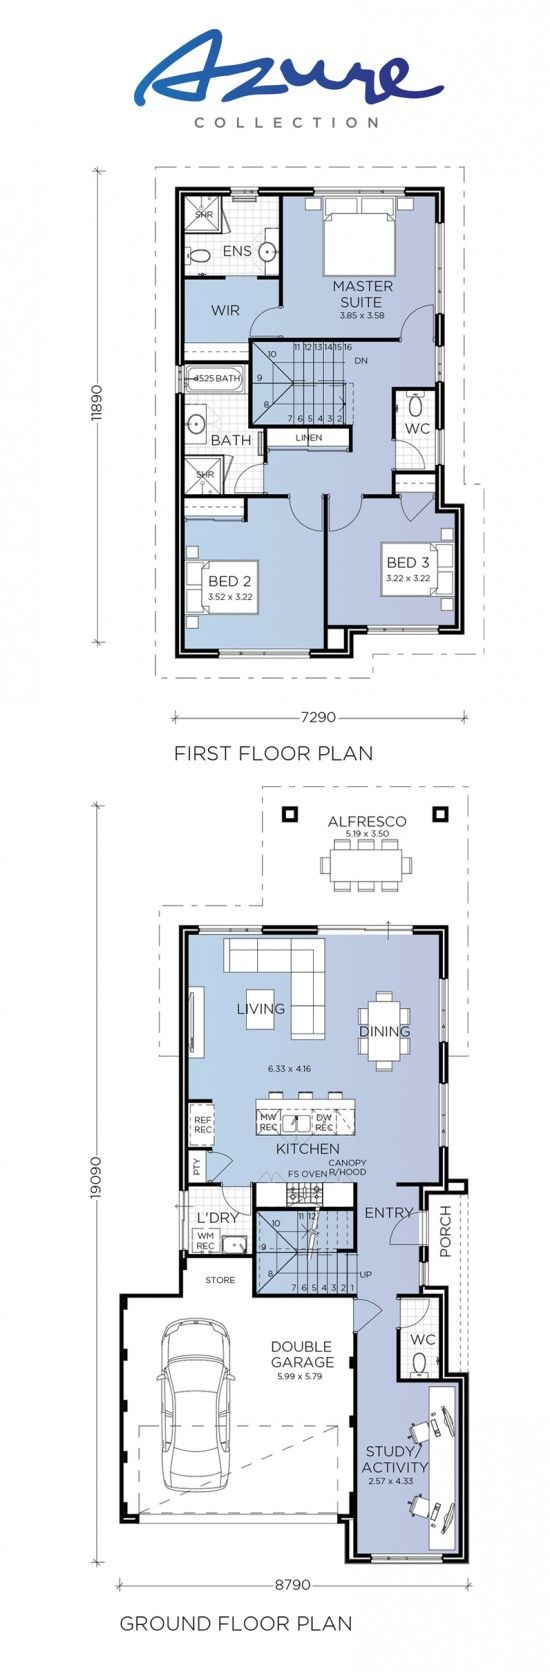 Find This Pin And More On Floor Plans Double By Leesjm